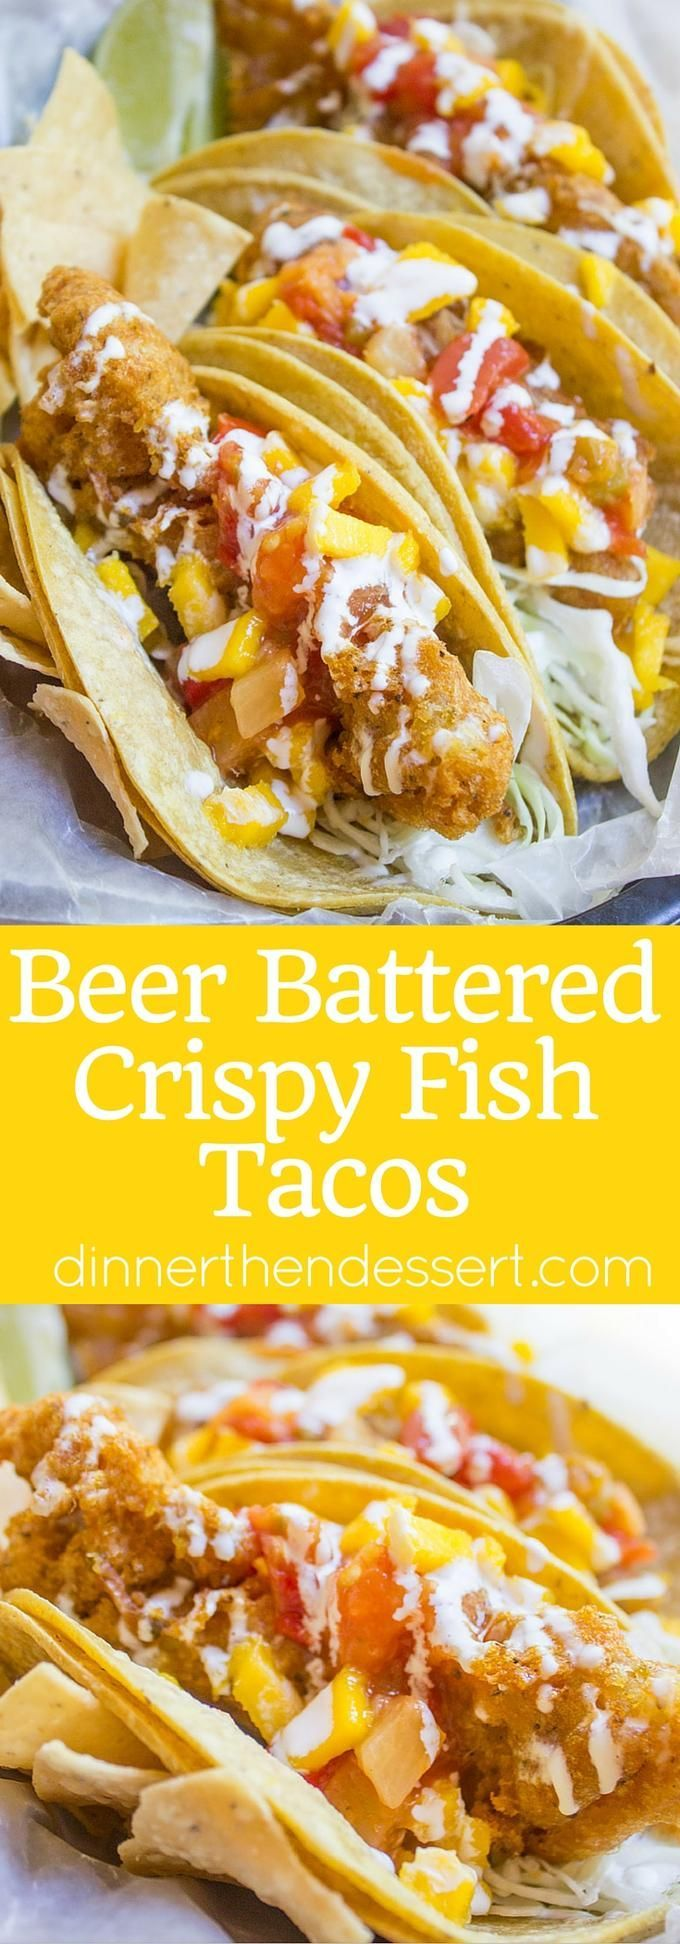 Beer Battered Crispy Fish Tacos with Mango Habanero Salsa are crunchy ...